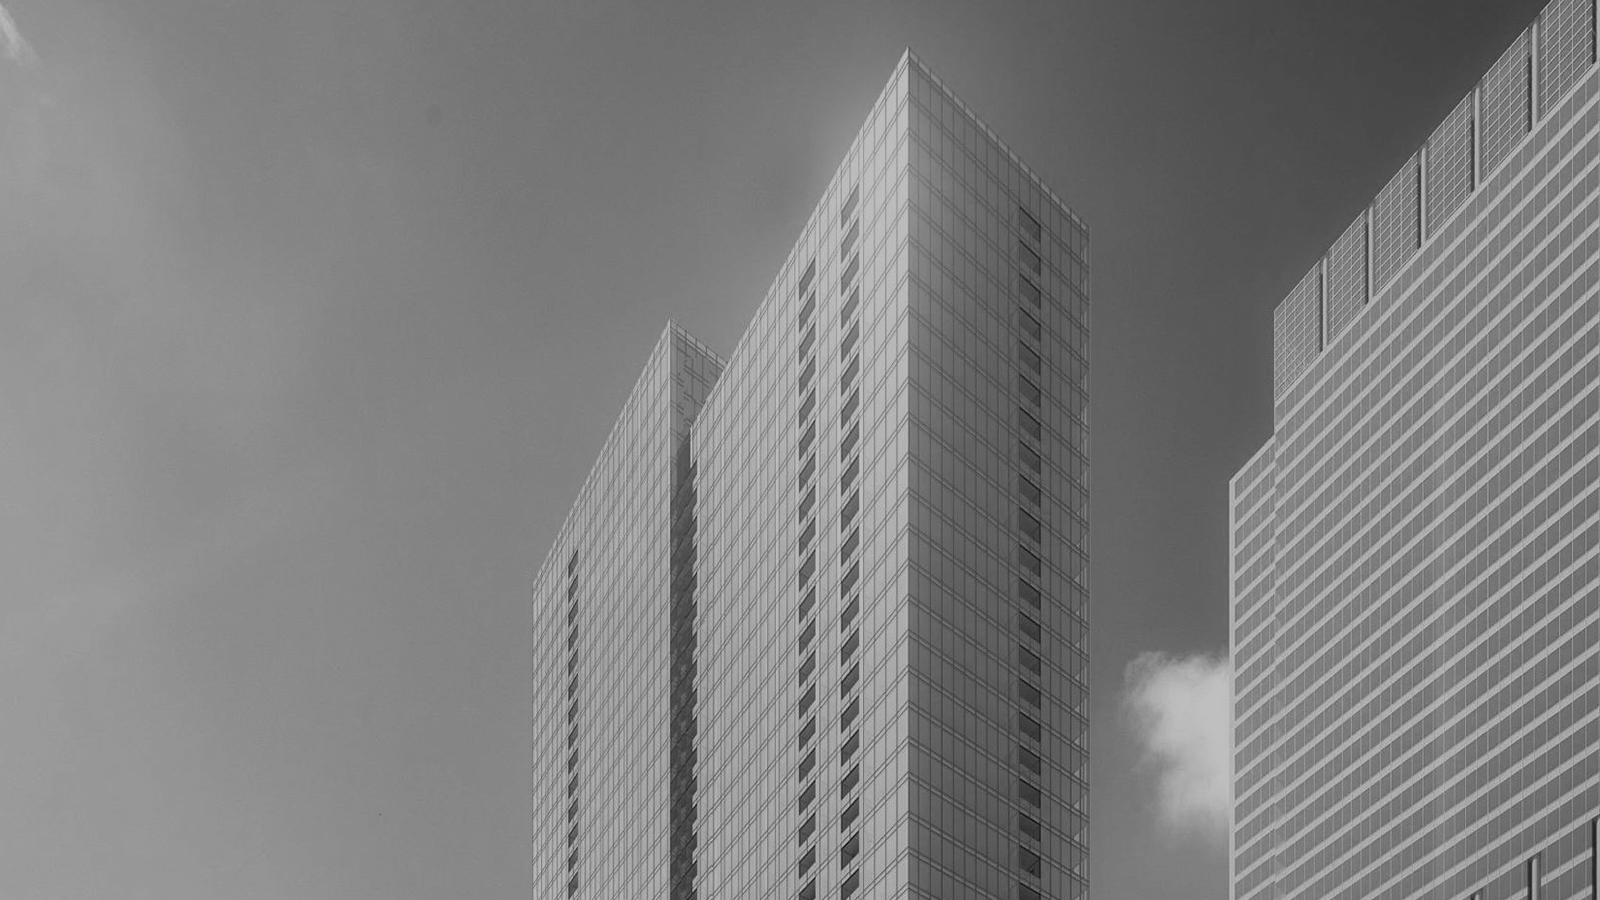 stylized, B&W photo of bKL ARCHITECTURE - PARCEL O